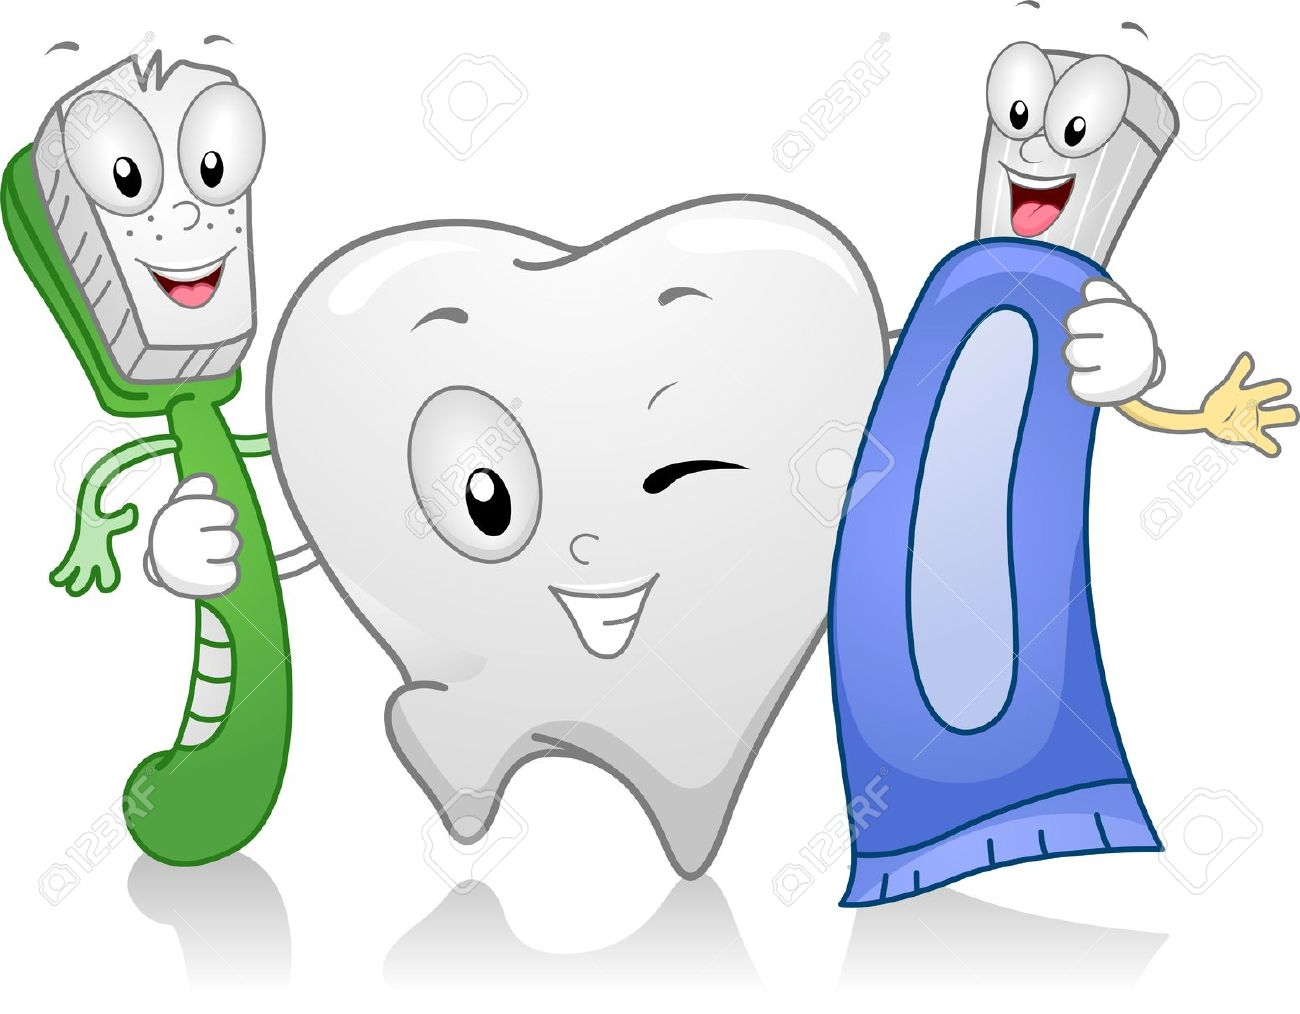 11330171 Illustration Of Dental Products Hanging Together Stock Teeth Cartoon Tooth